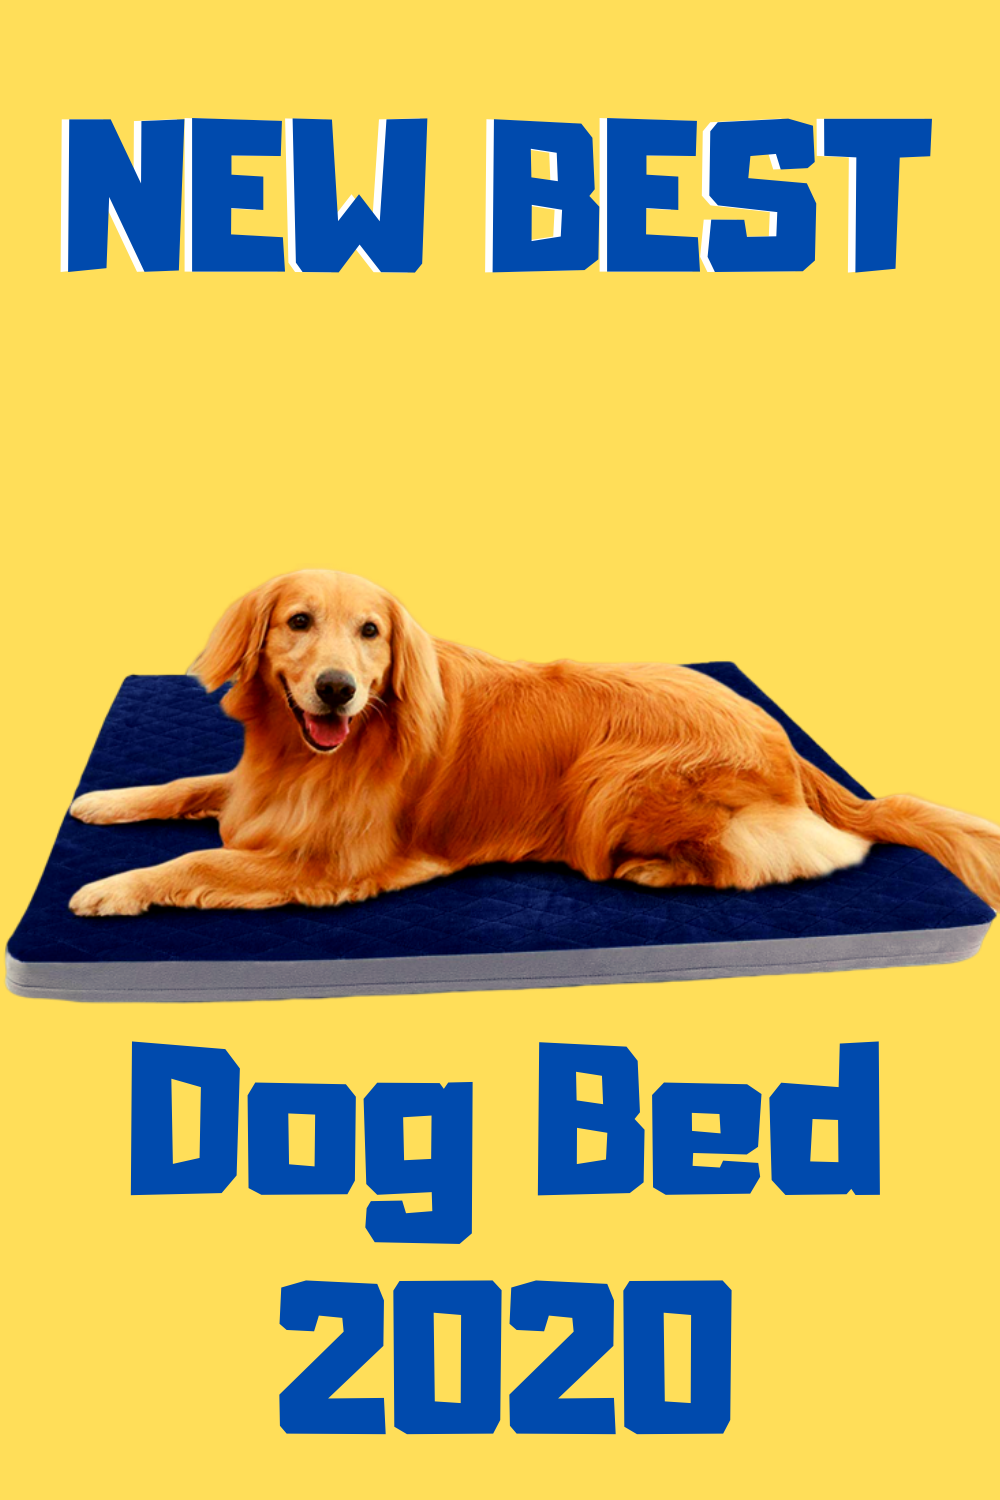 Top 7 Best Dog Beds 2020 Brand New Online Pet Store Amazon In 2020 Online Pet Store Dog Beds For Small Dogs Dog Bed